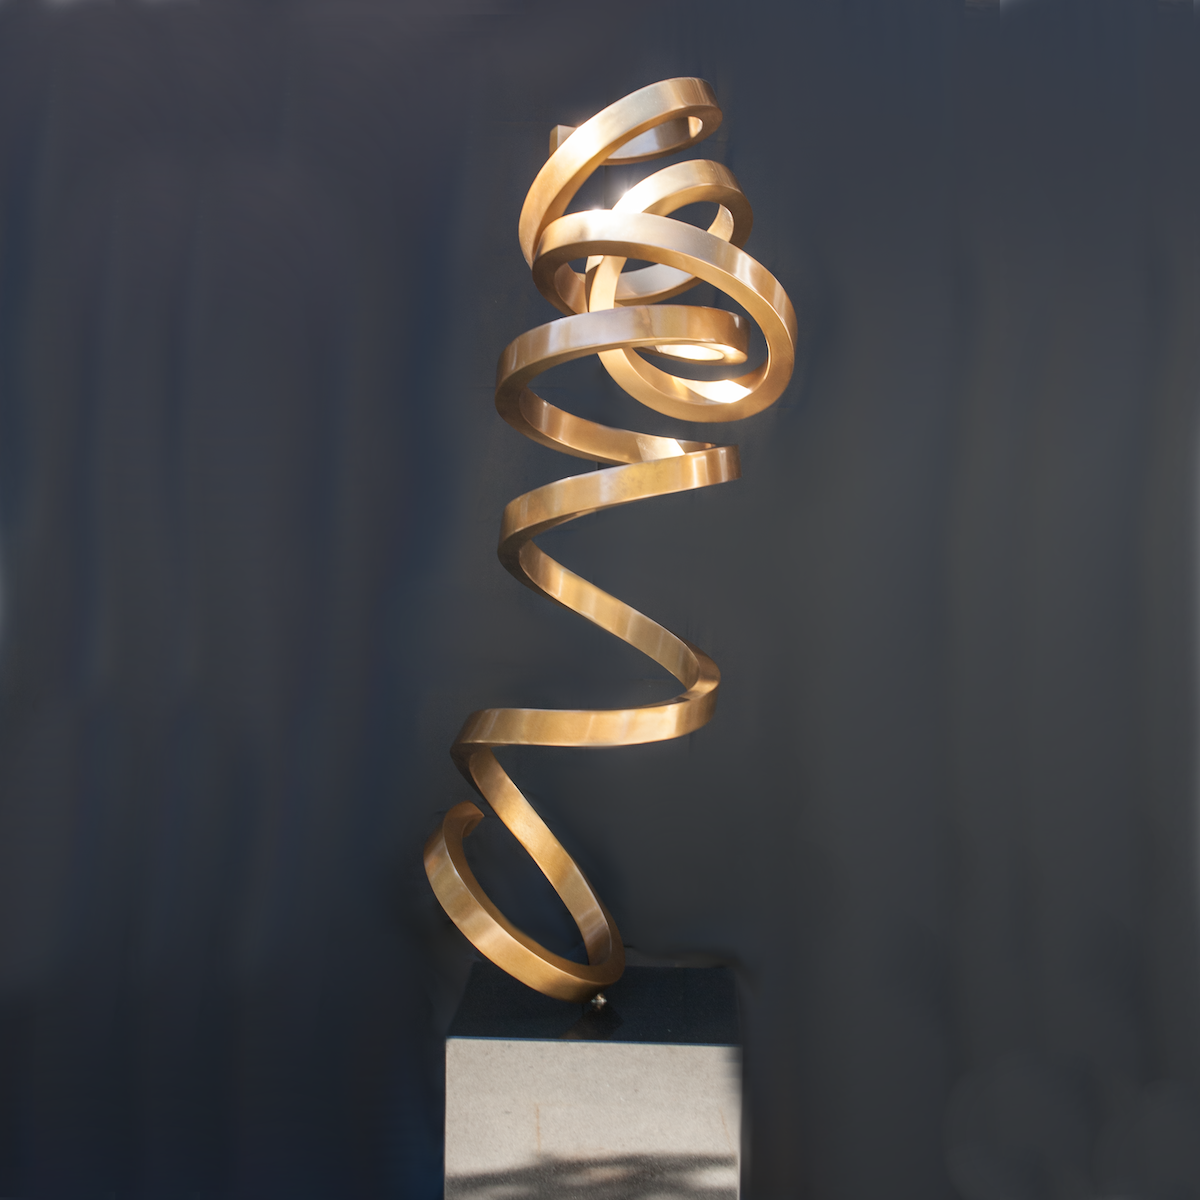 Golden-Tendril-03.png